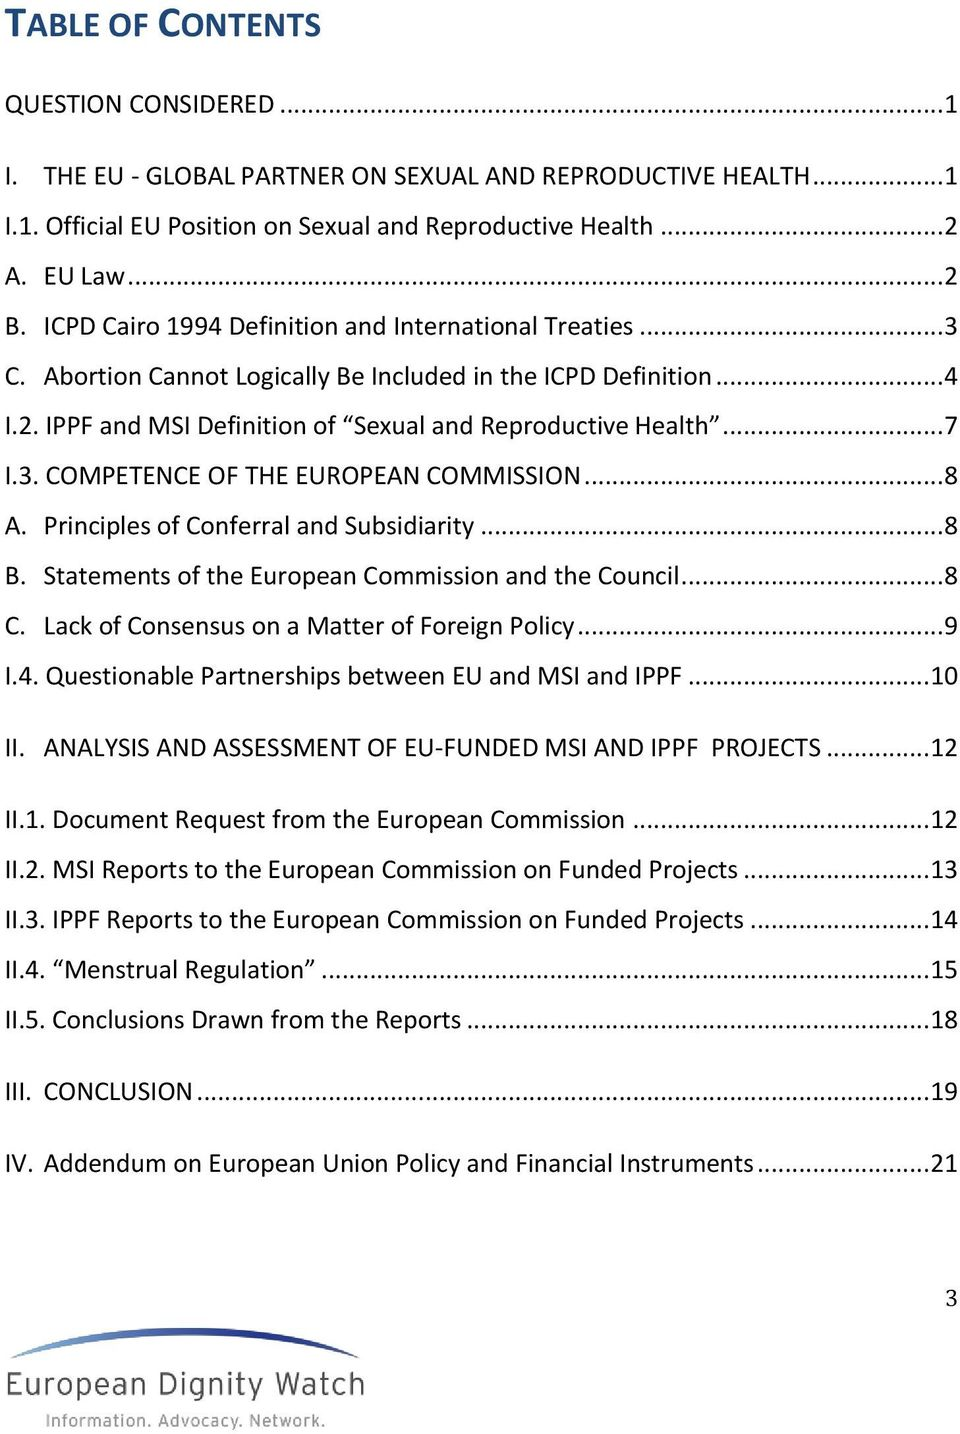 .. 8 A. Principles of Conferral and Subsidiarity... 8 B. Statements of the European Commission and the Council... 8 C. Lack of Consensus on a Matter of Foreign Policy... 9 I.4.